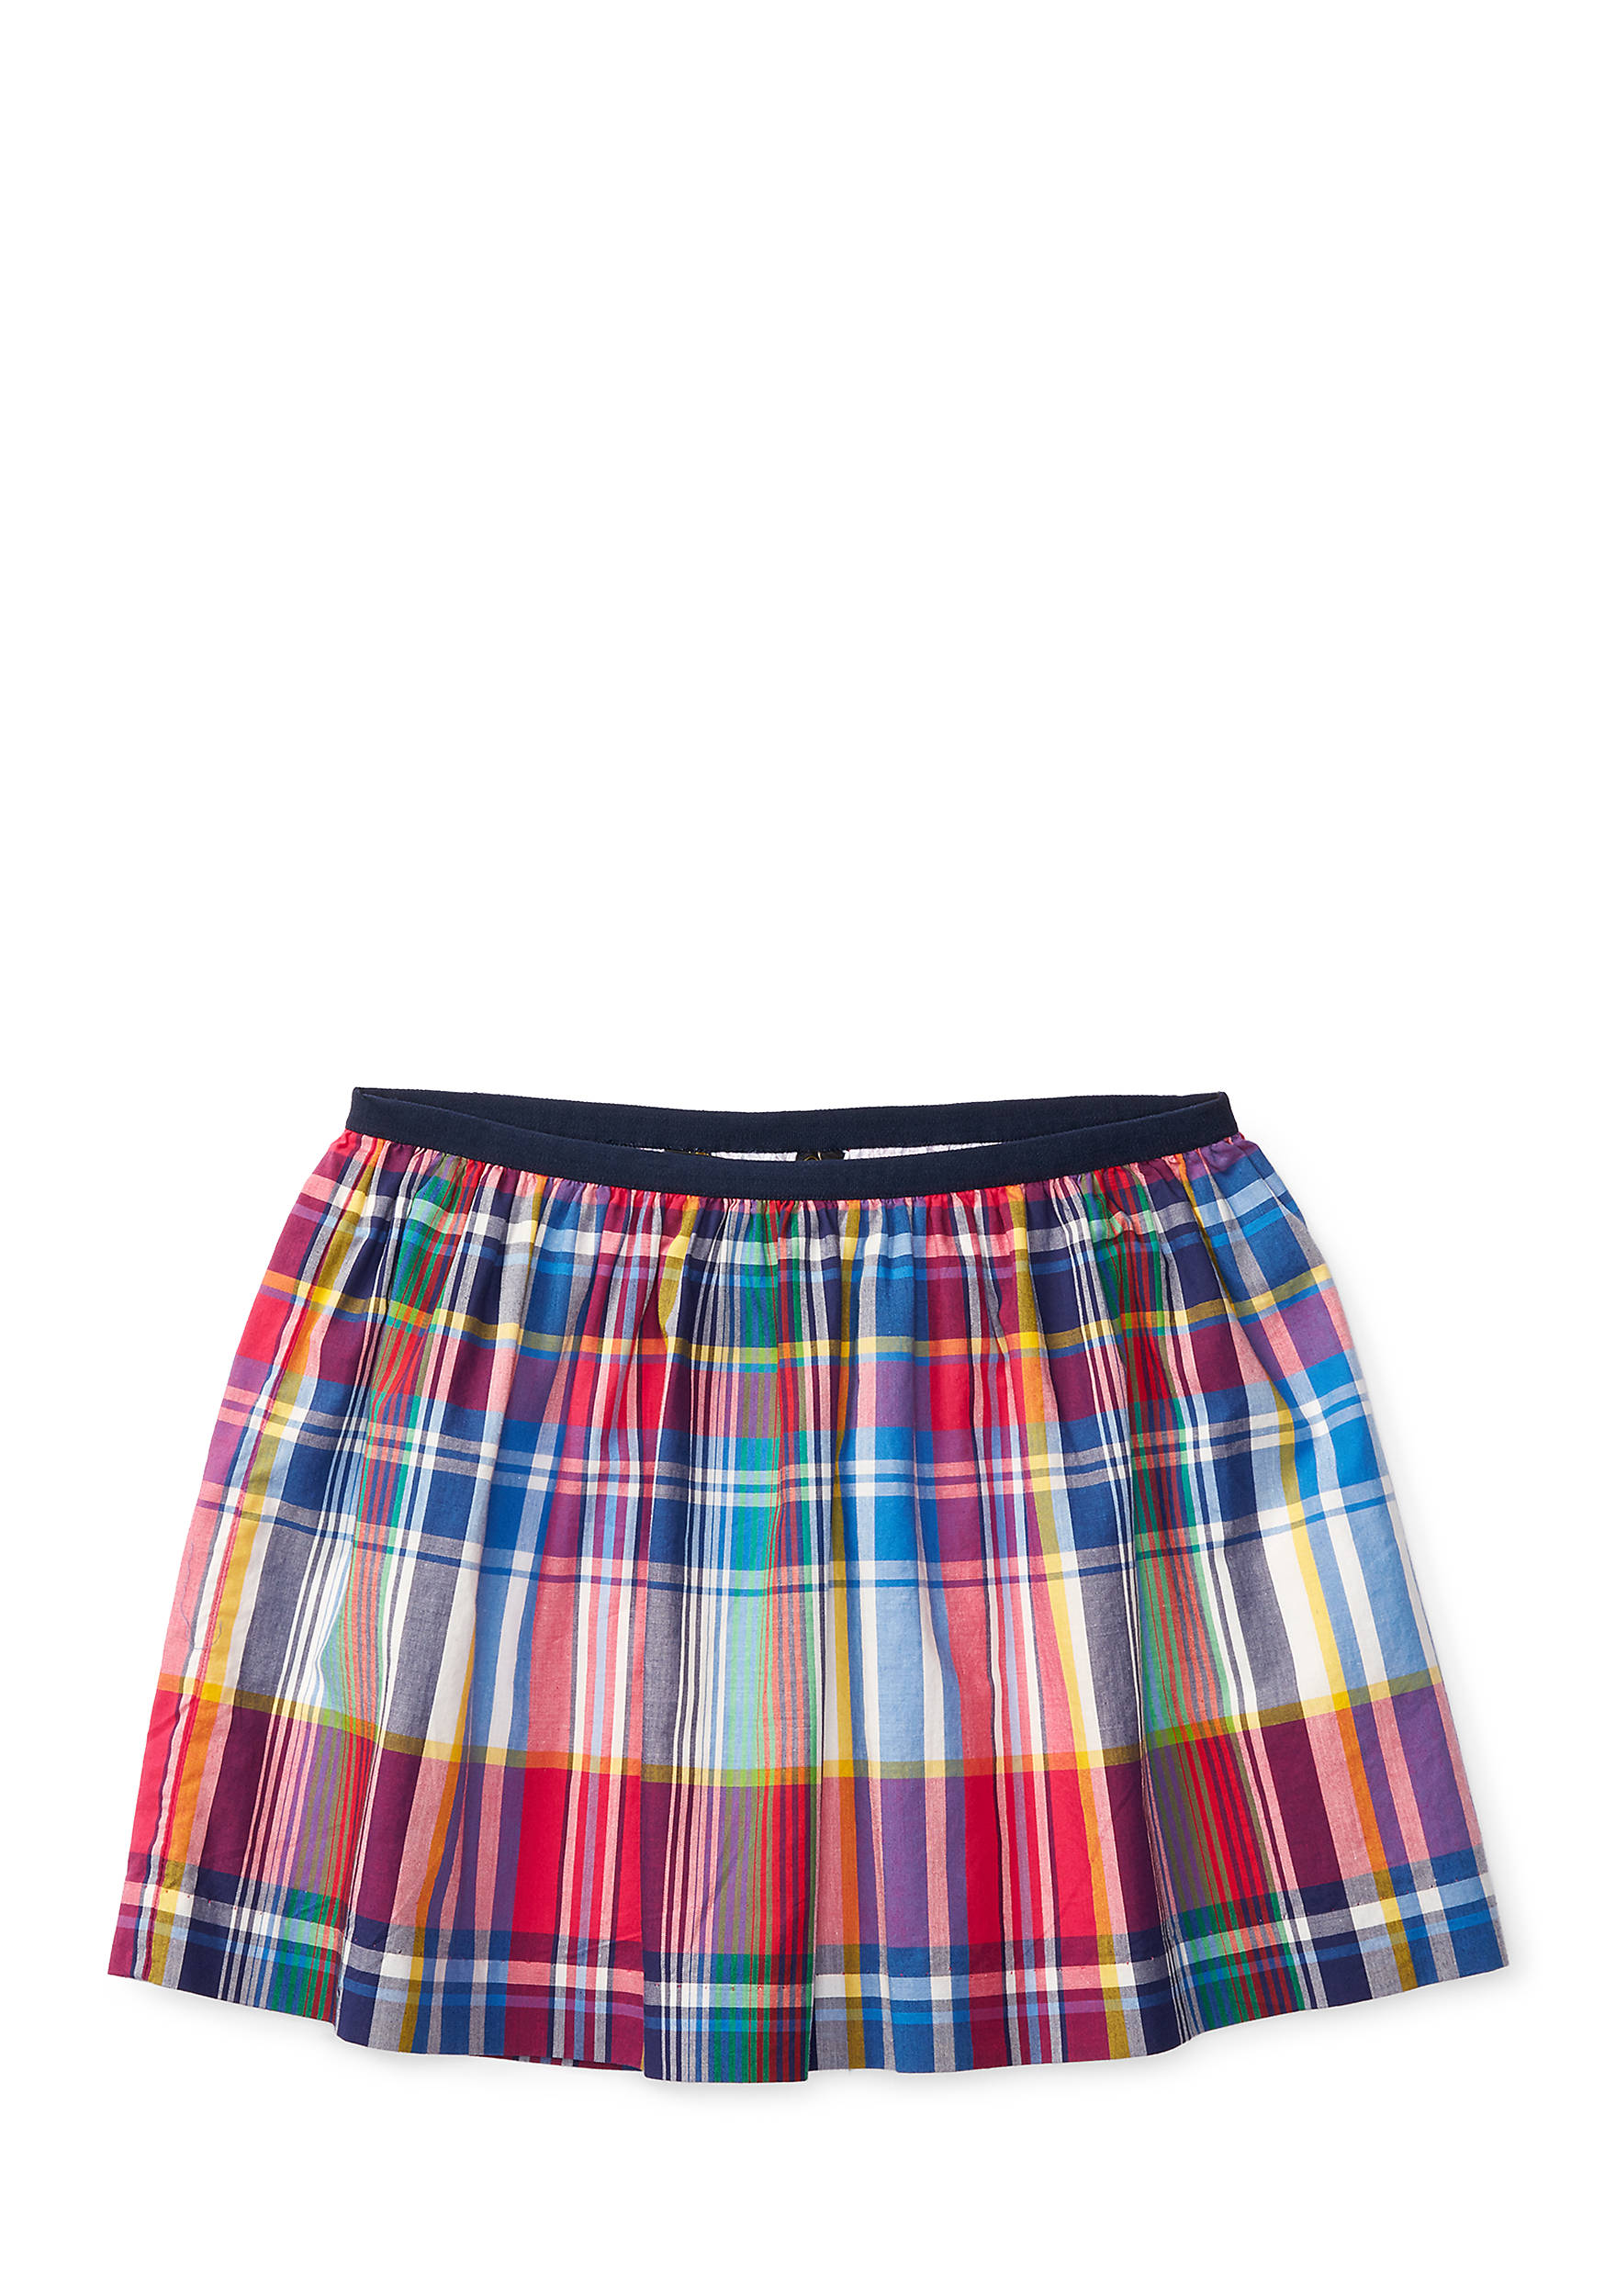 Ralph Lauren Childrenswear Plaid Poplin Pull-On Skirt Toddler Girl.  4100330311631128001. Images